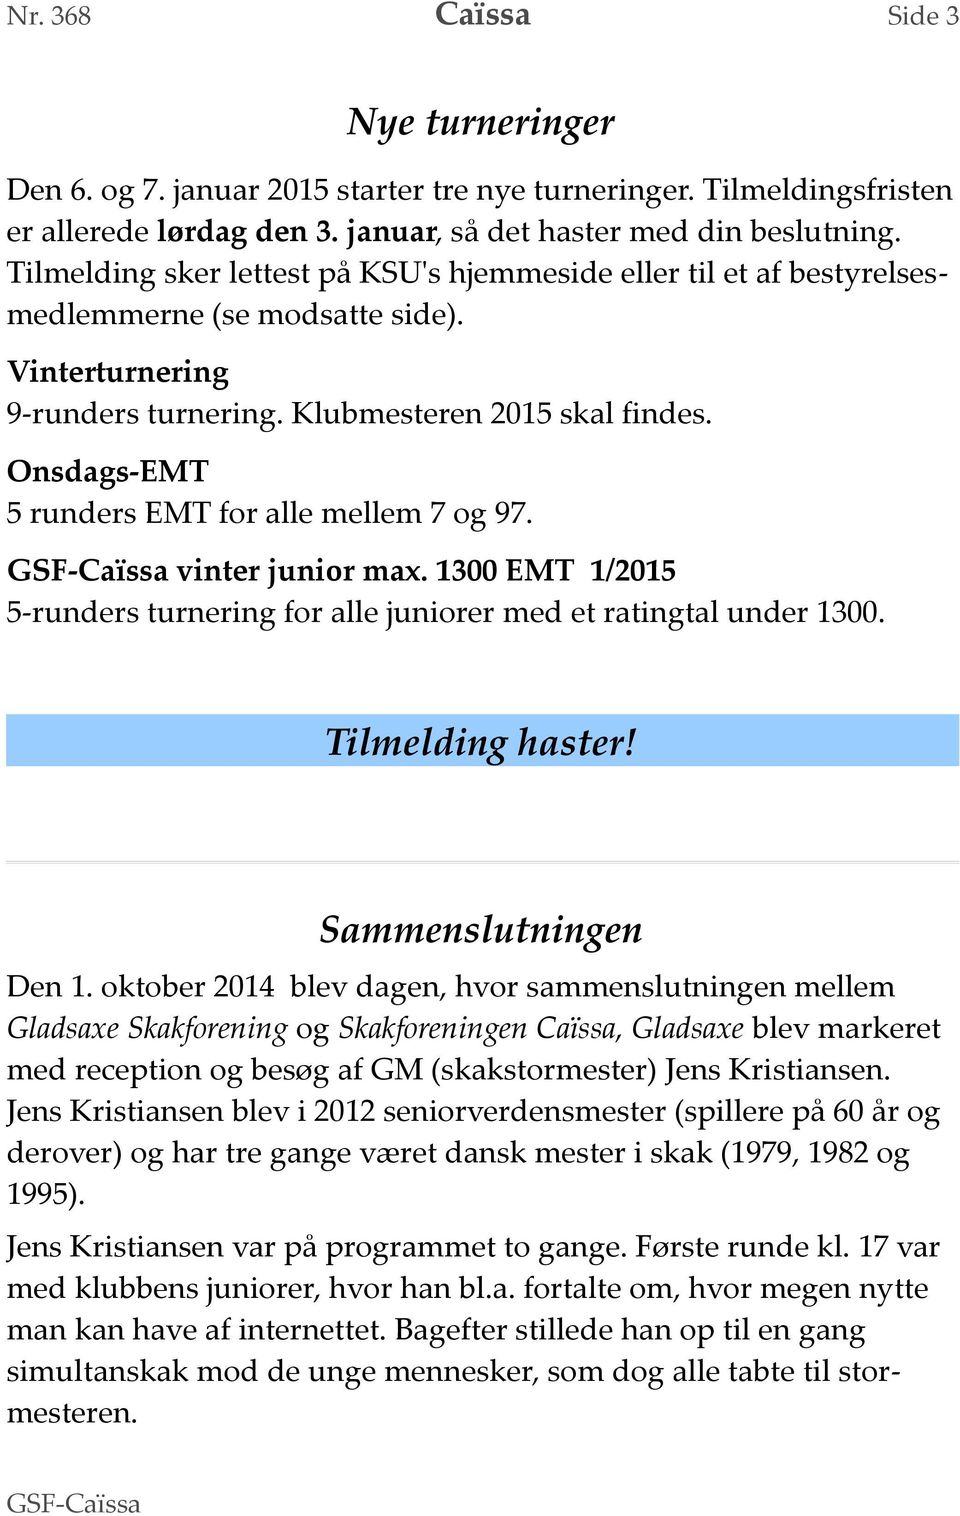 Onsdags-EMT 5 runders EMT for alle mellem 7 og 97. GSF- vinter junior max. 1300 EMT 1/2015 5-runders turnering for alle juniorer med et ratingtal under 1300. Tilmelding haster! Sammenslutningen Den 1.